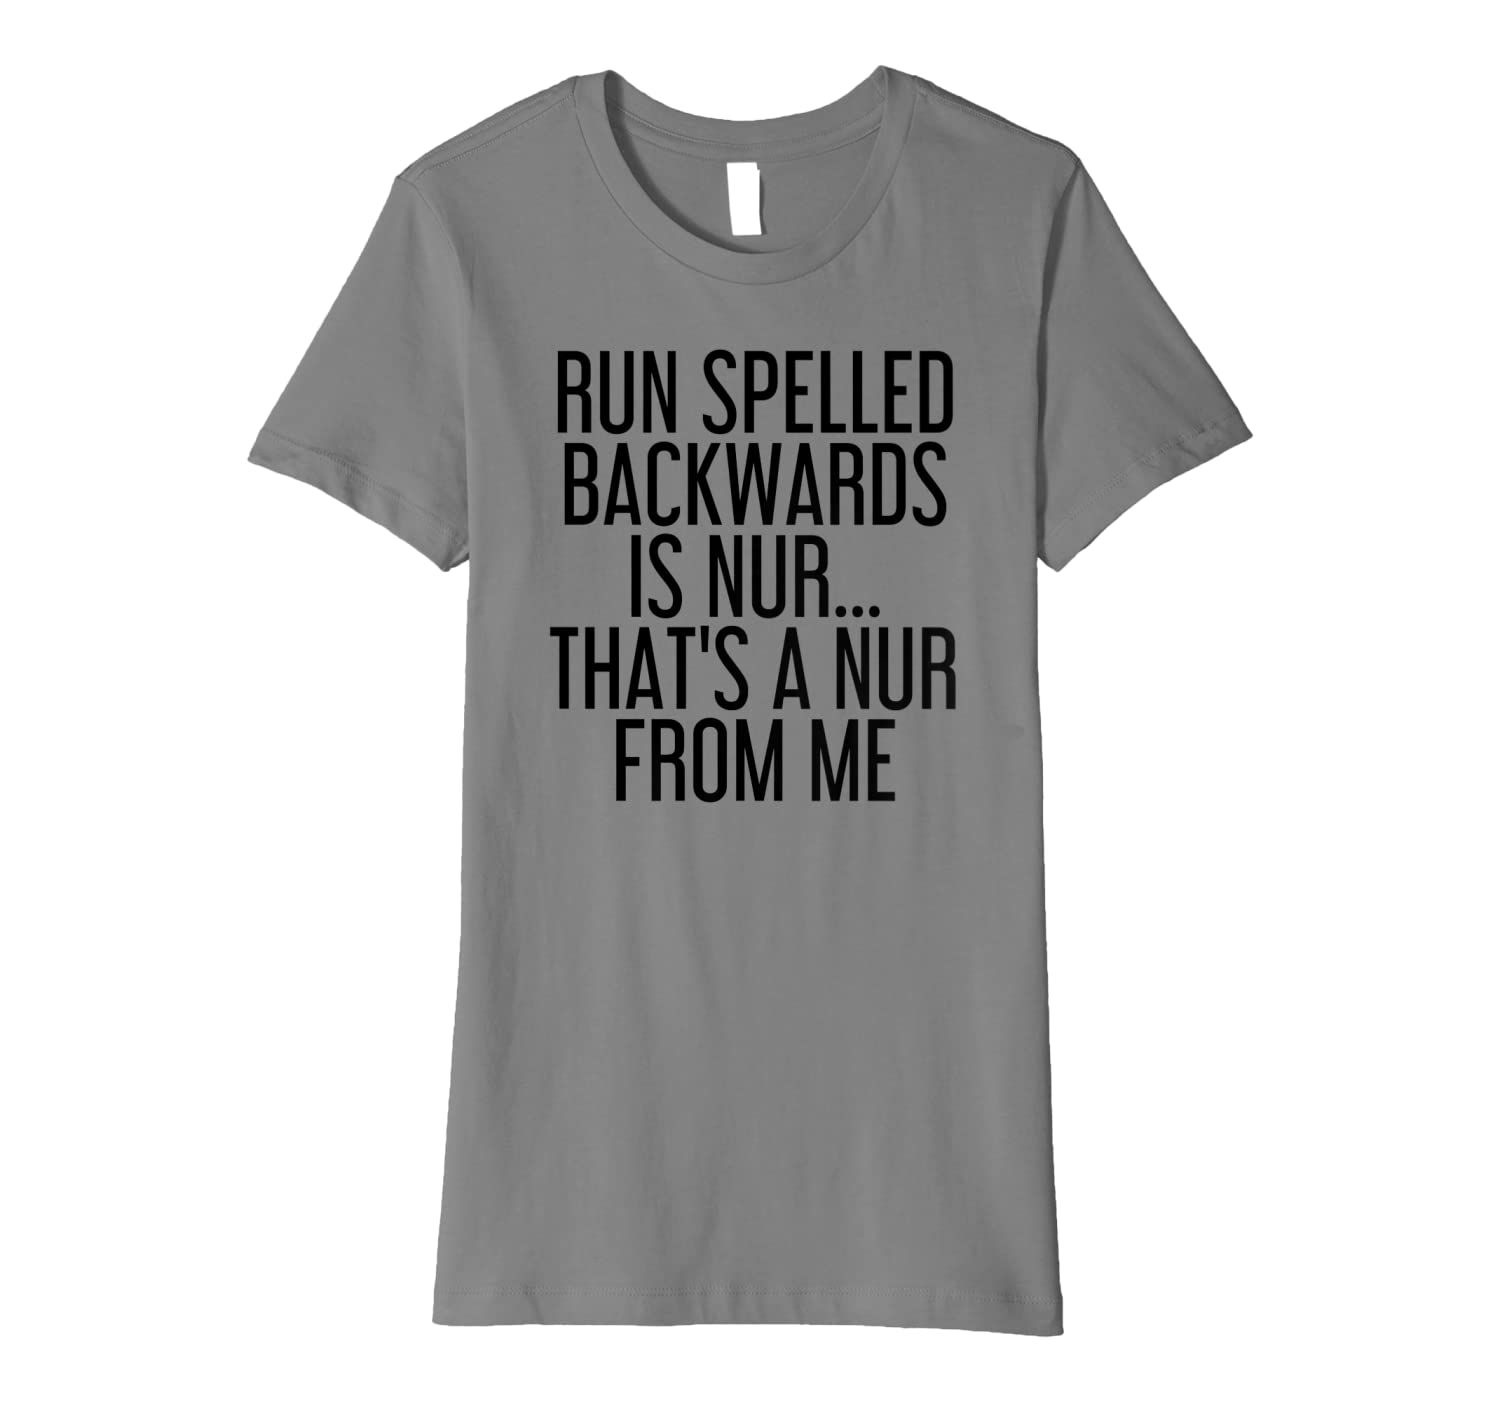 Shop Run Spelled Backwards Is Nur Shirt Funny Running Gift Idea today from my store, 100 percent satisfaction guaranteed. Also available: Shirts, Long Sleeve, Hoodie, Ladies Tee.... ✓ Unique designs ✓ Large assortment ✓ Easy 30 day return policy. We normally ship all items within 2 - 4 business days after payment is received.Packages usually arrive within 6 - 15 business days. International shipping times vary by location, and usually ranges from 2 - 5 weeks.  Unique holiday season collections f